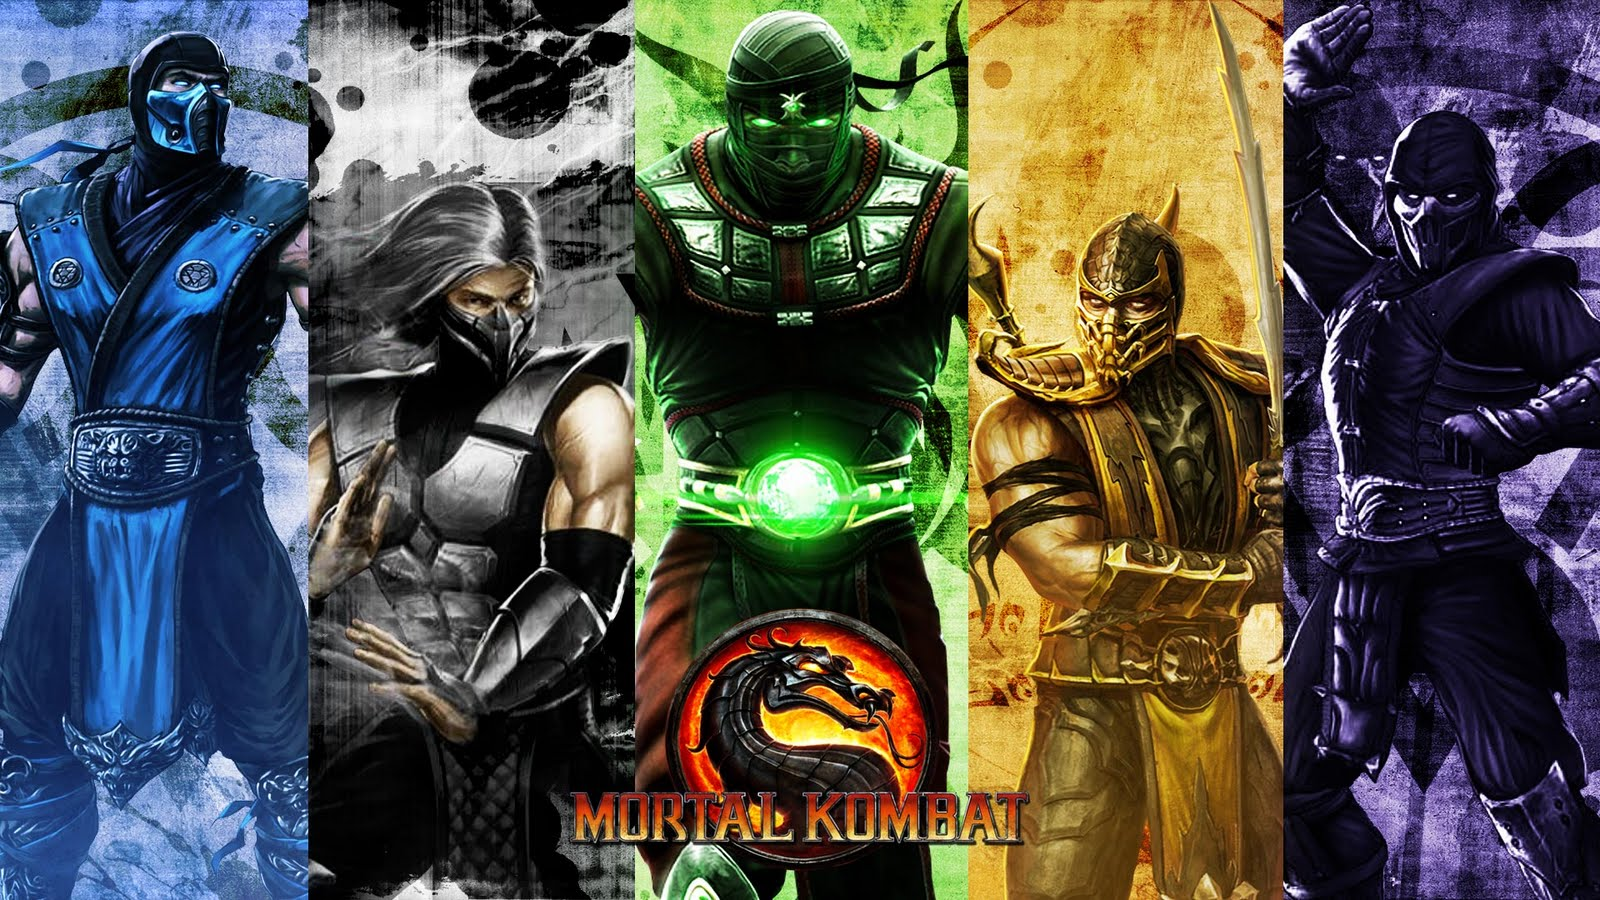 Mortal kombat HD & Widescreen Wallpaper 0.042659678558451